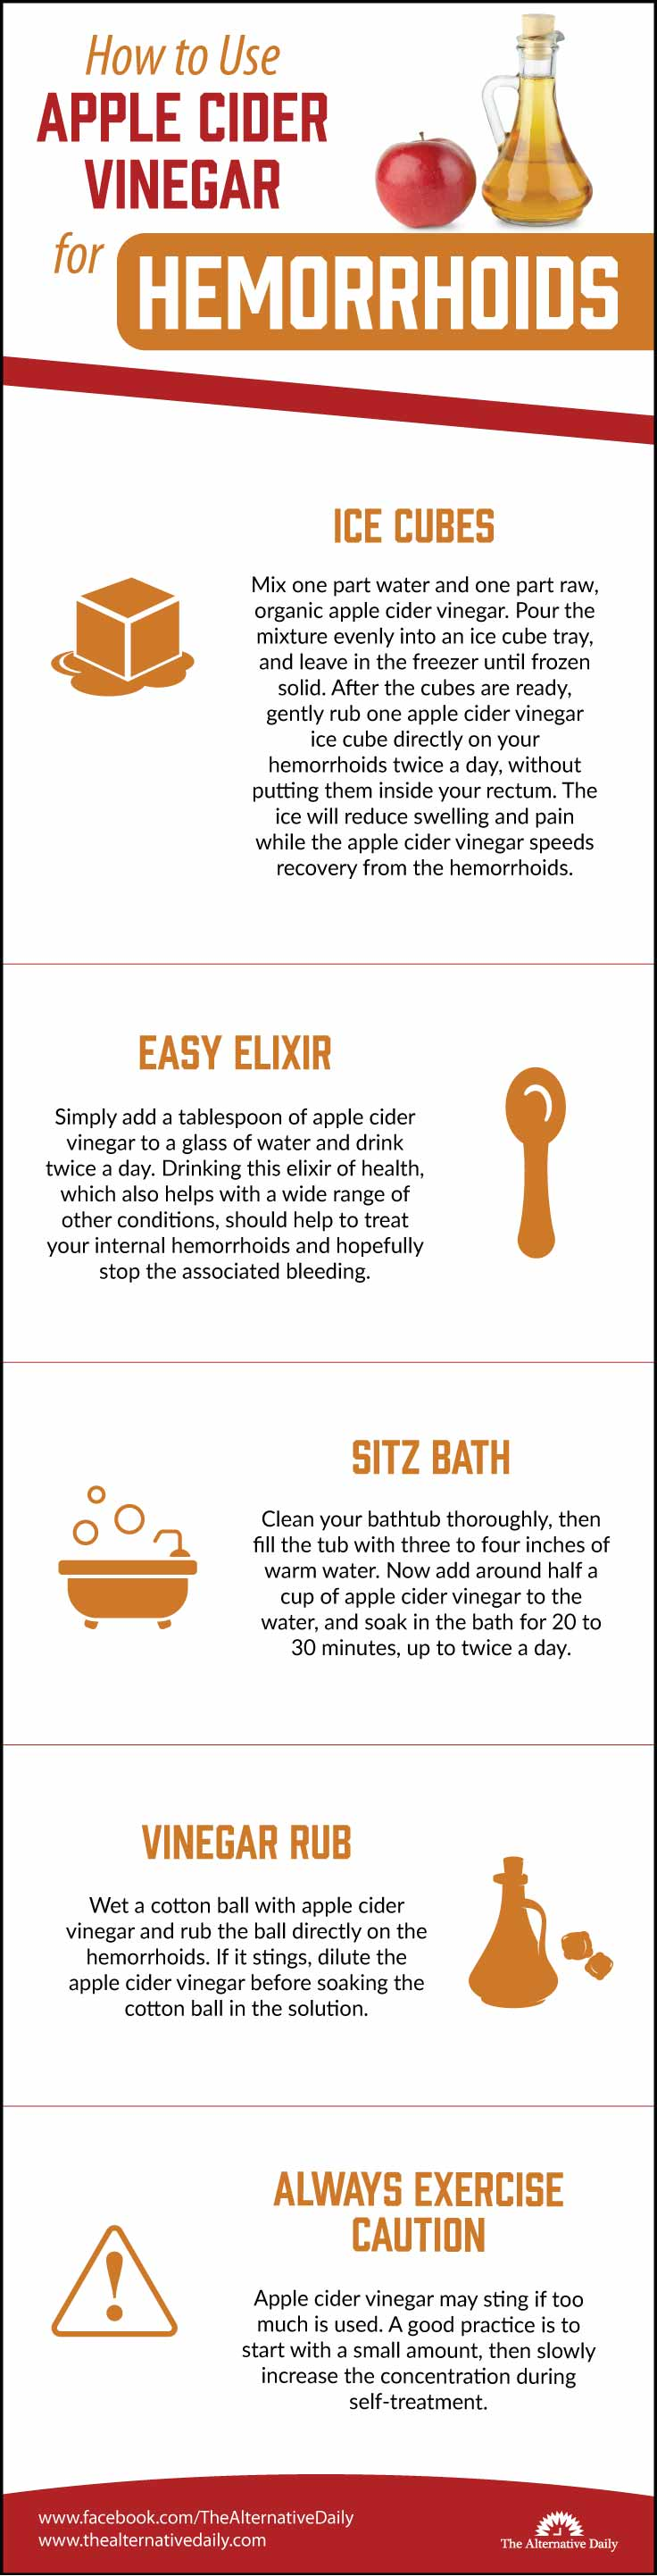 how-to-use-acv-for-hemorrhoids